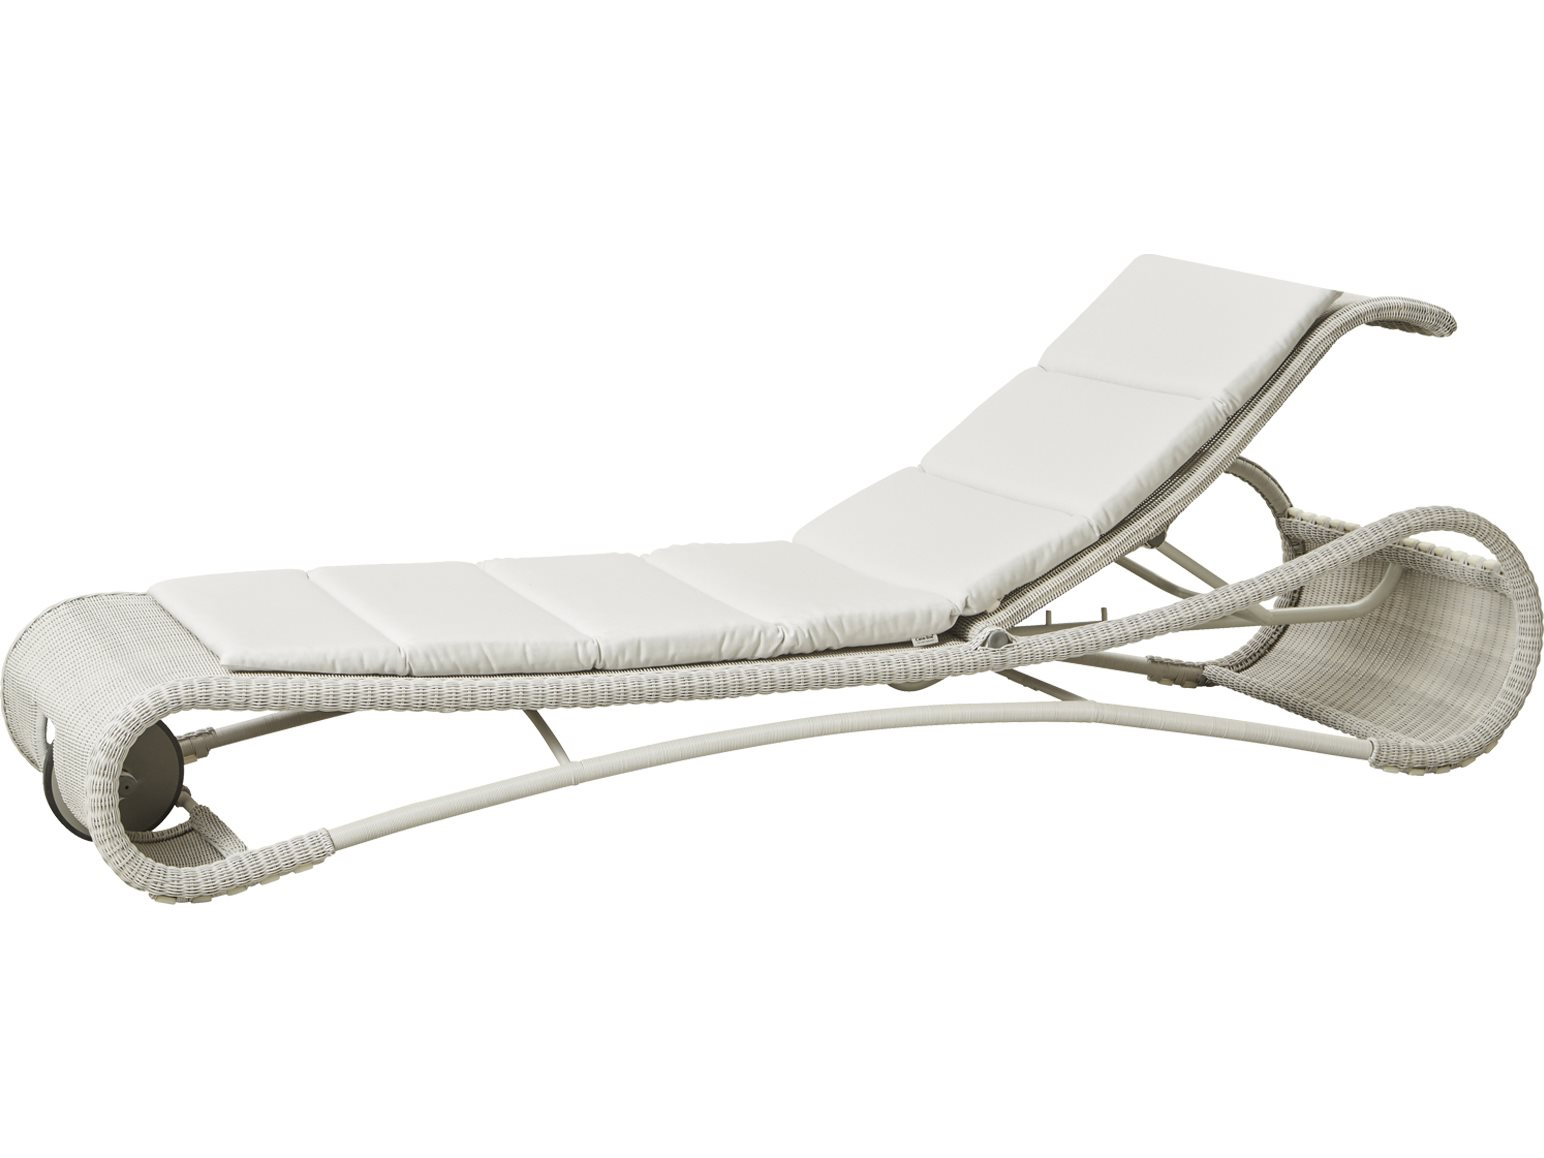 Round Folding Dining Table, Cane Line Outdoor Escape White Grey Aluminum Wicker Cushion Chaise Lounge 5523lw 5523ysn94